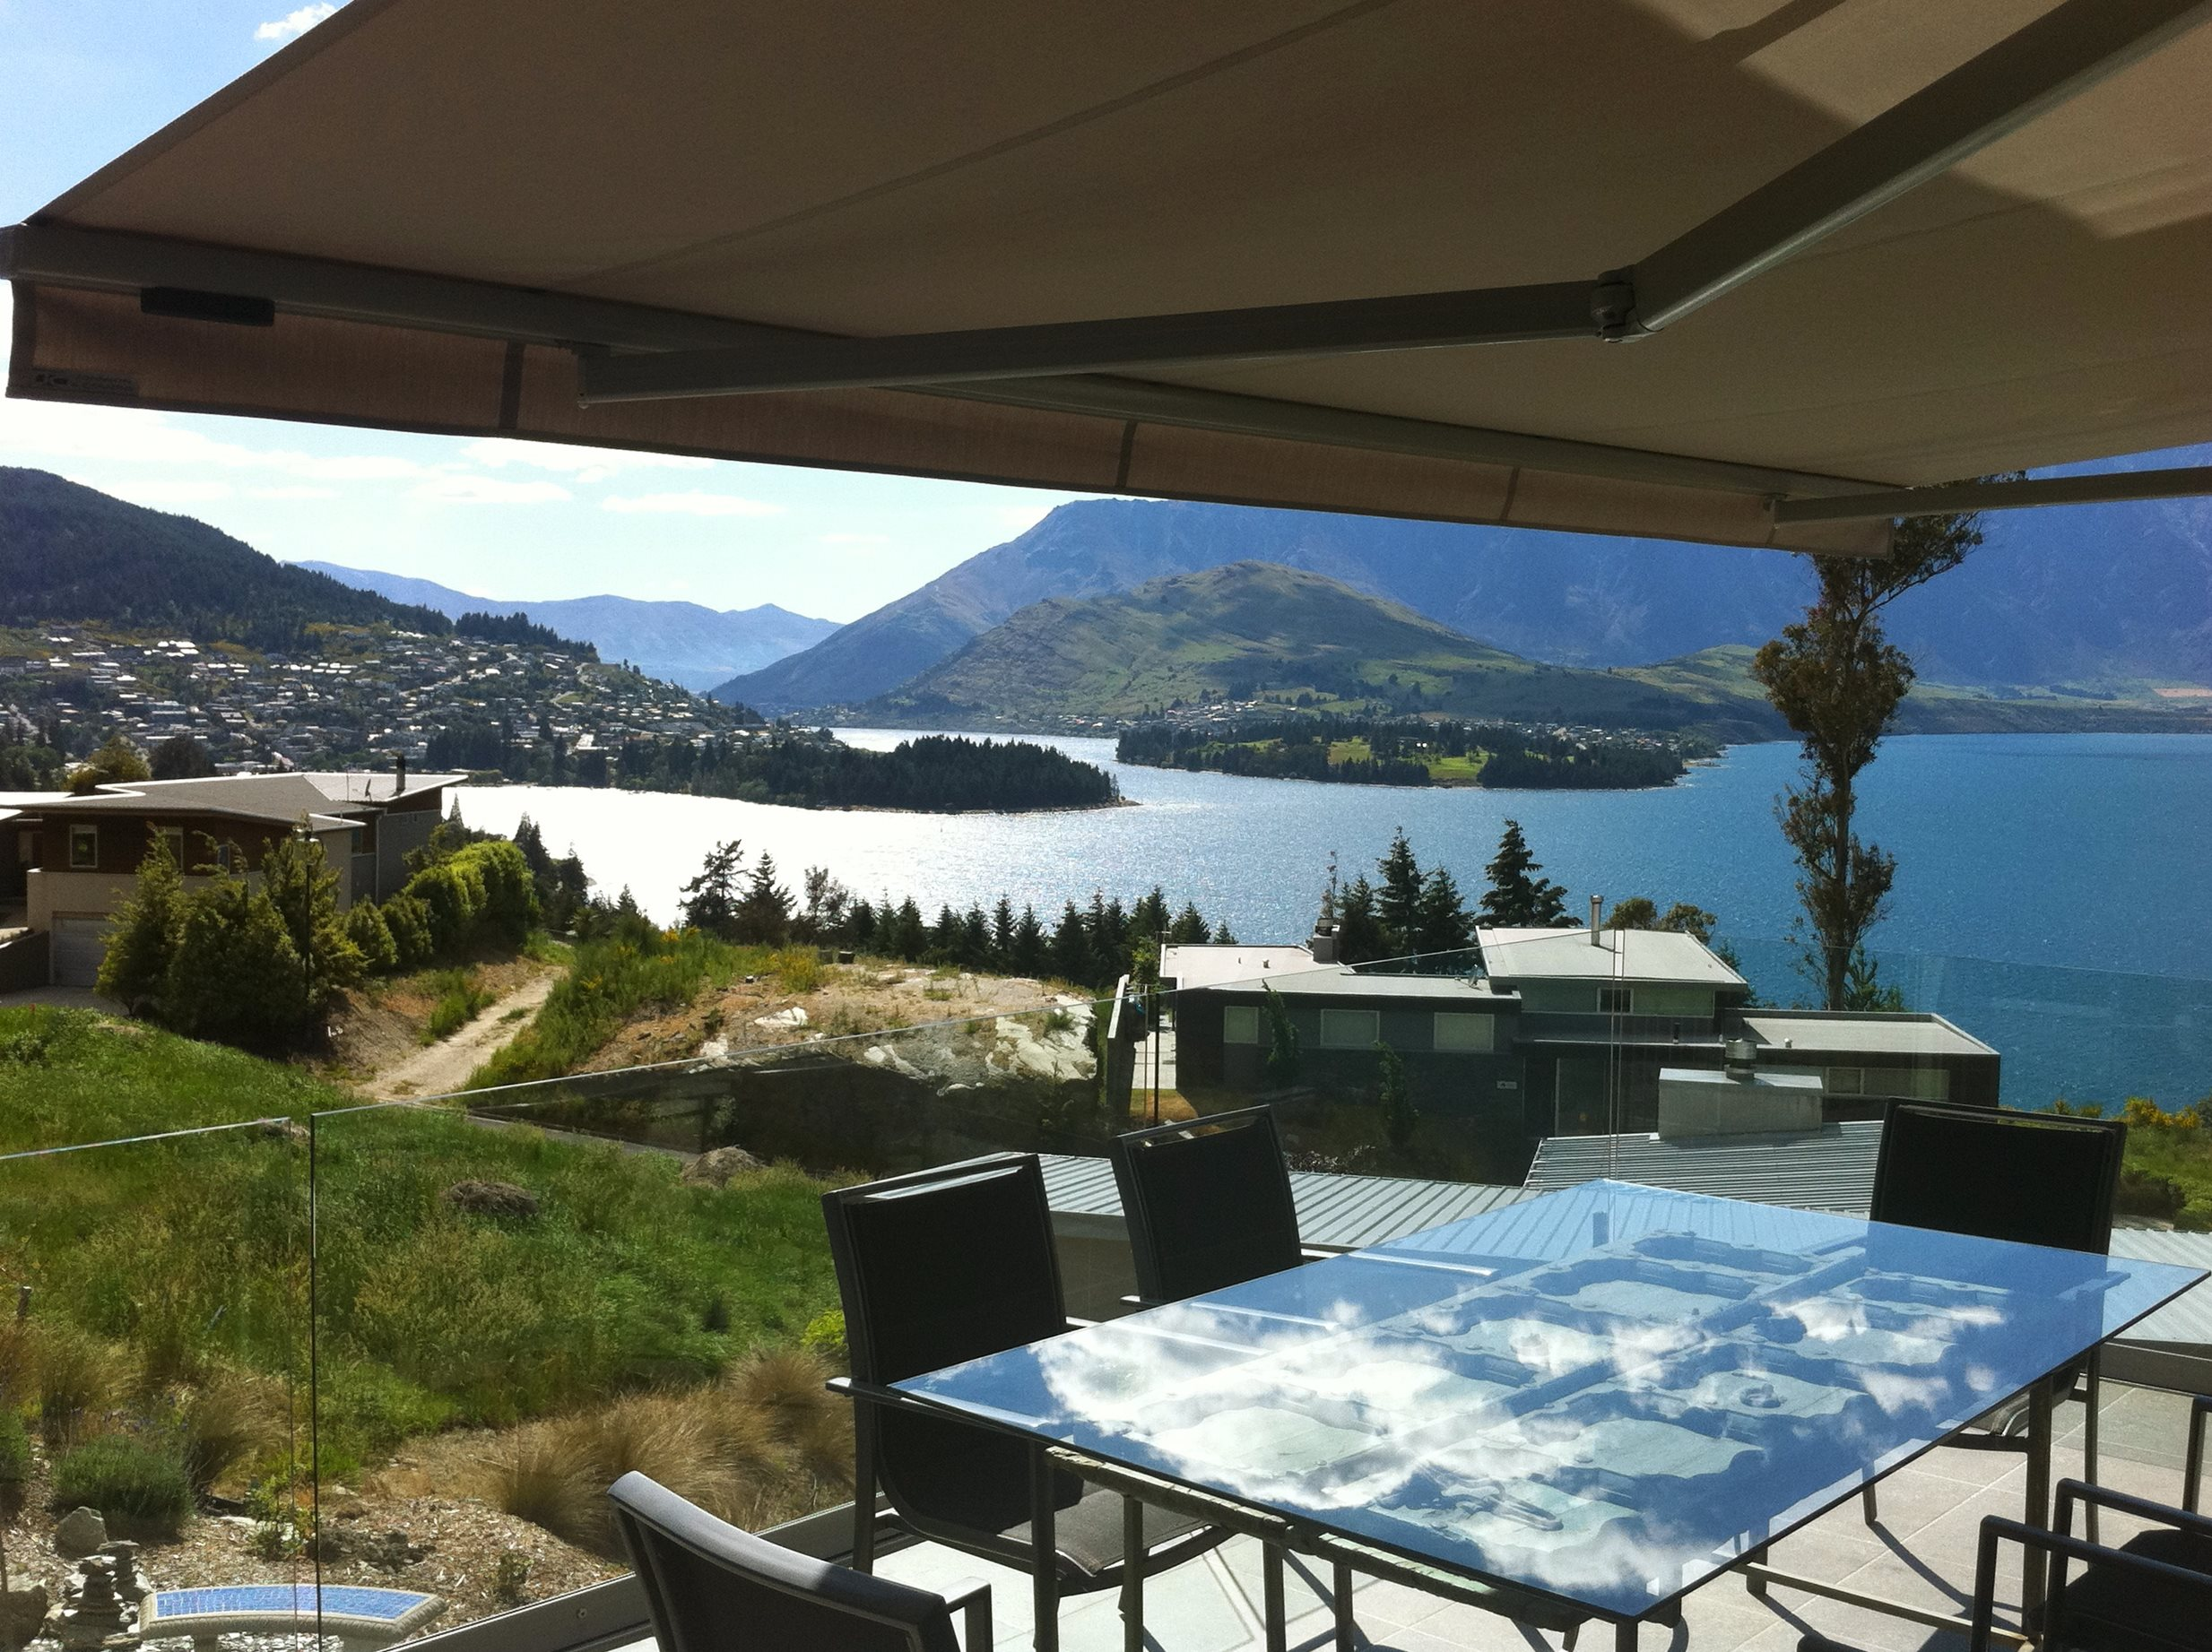 Euro awning open over balcony looking over Queenstown